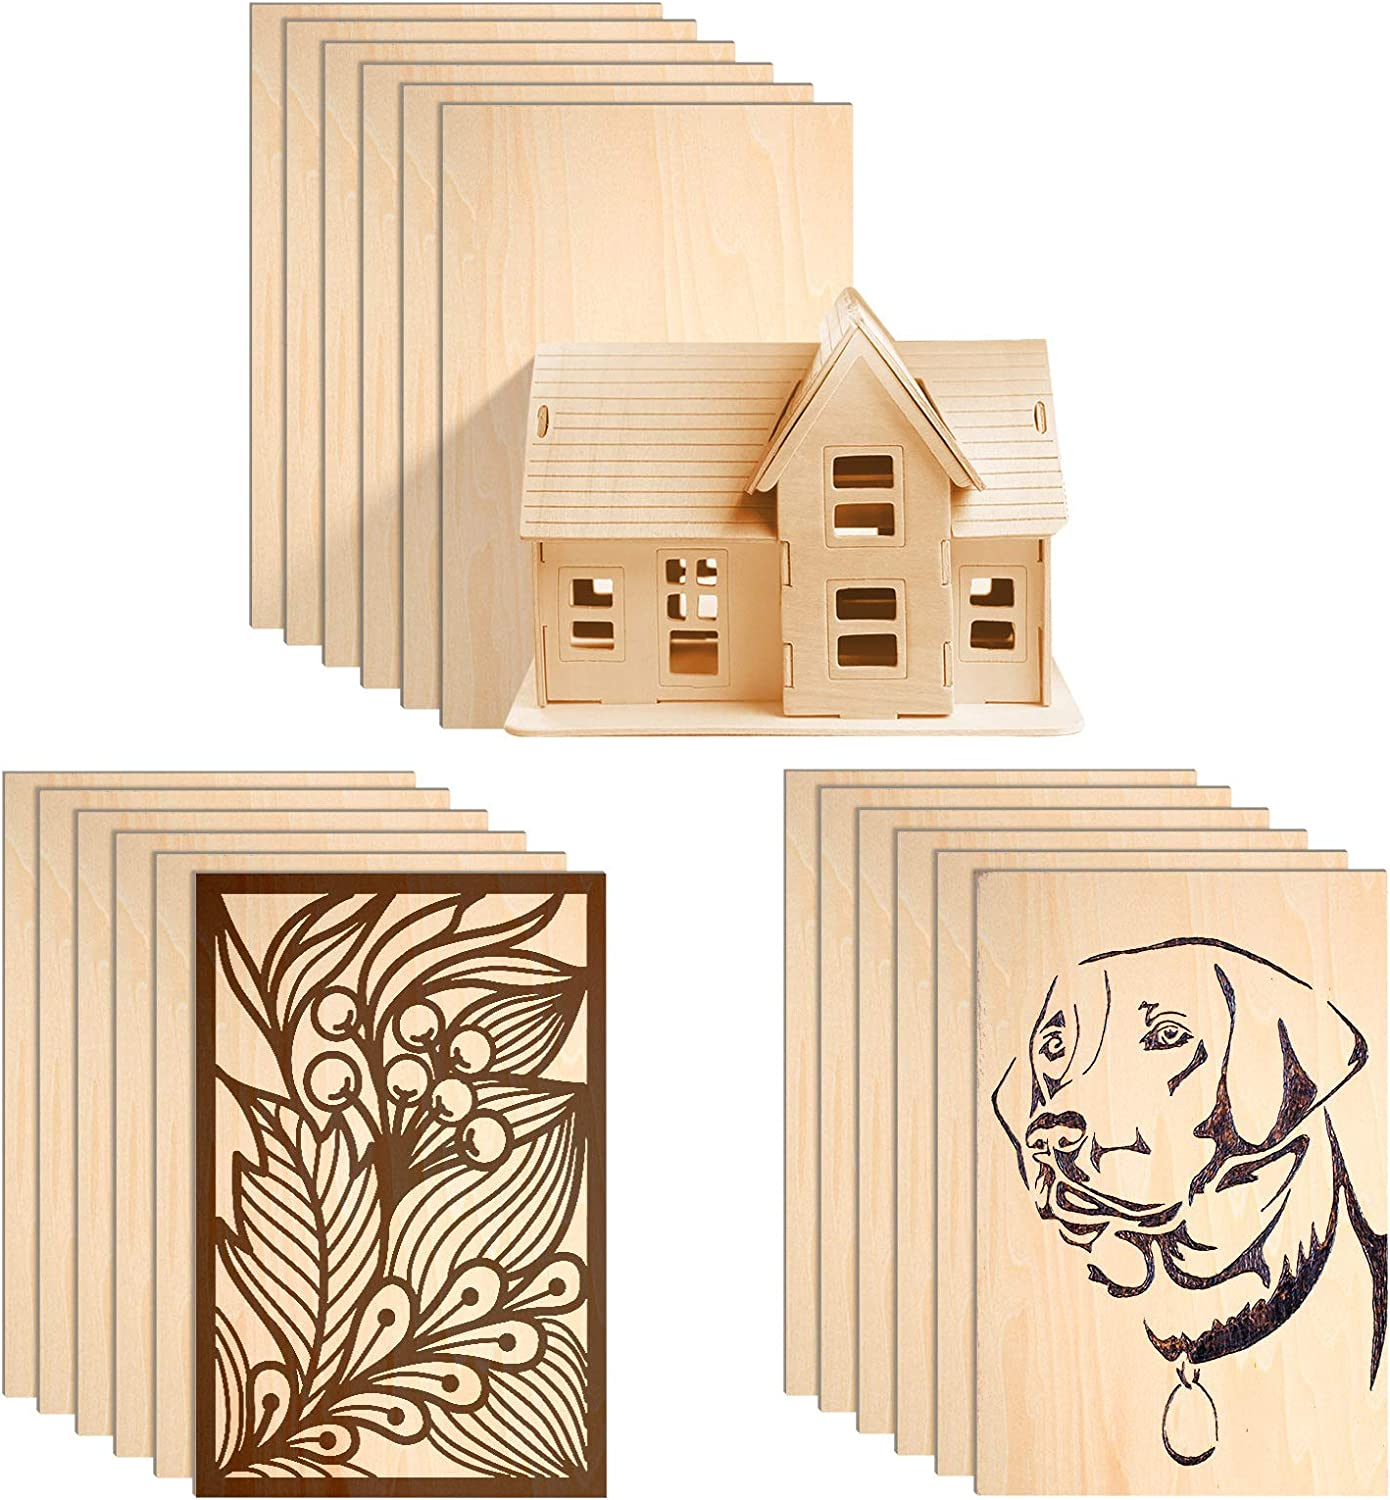 Pack of 15 Balsa Wood Sheets Unfinished Unpainted Basswood Thin Wood Sheets Hobby Wood MDF DIY Wood Board for Mini House Building Aircraft Ship Boat DIY Wooden Plate Model for Arts and Crafts School Projects 150x100x2mm